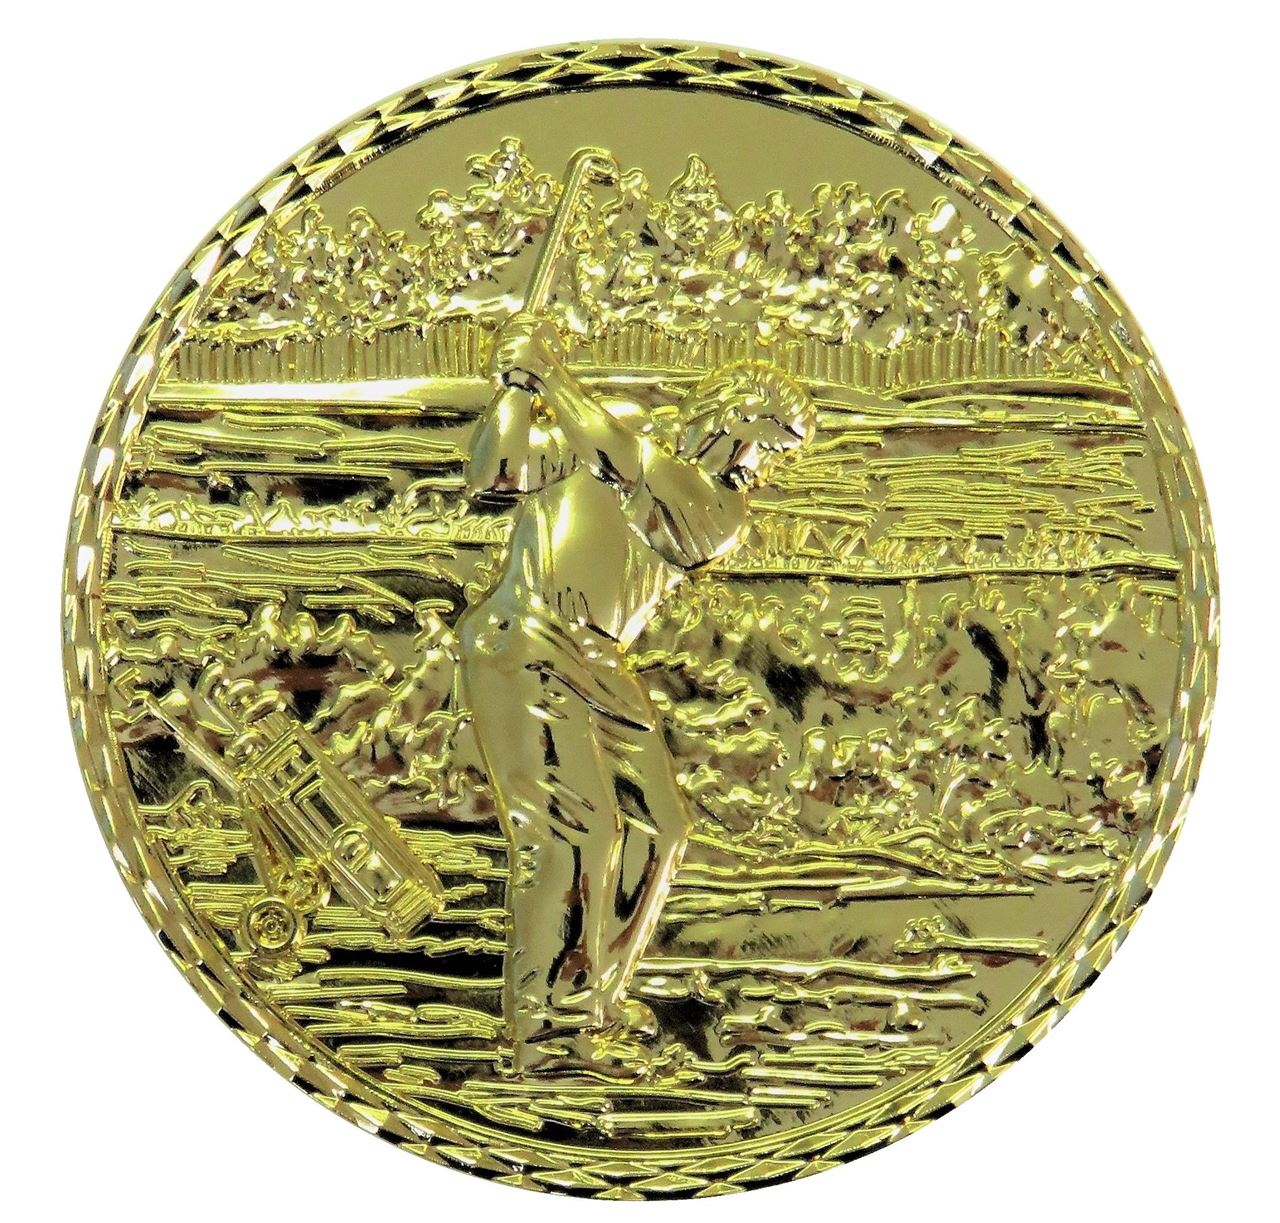 Gold Quality Golf 2 Medal (size: 60mm) - Golf2 Alloy